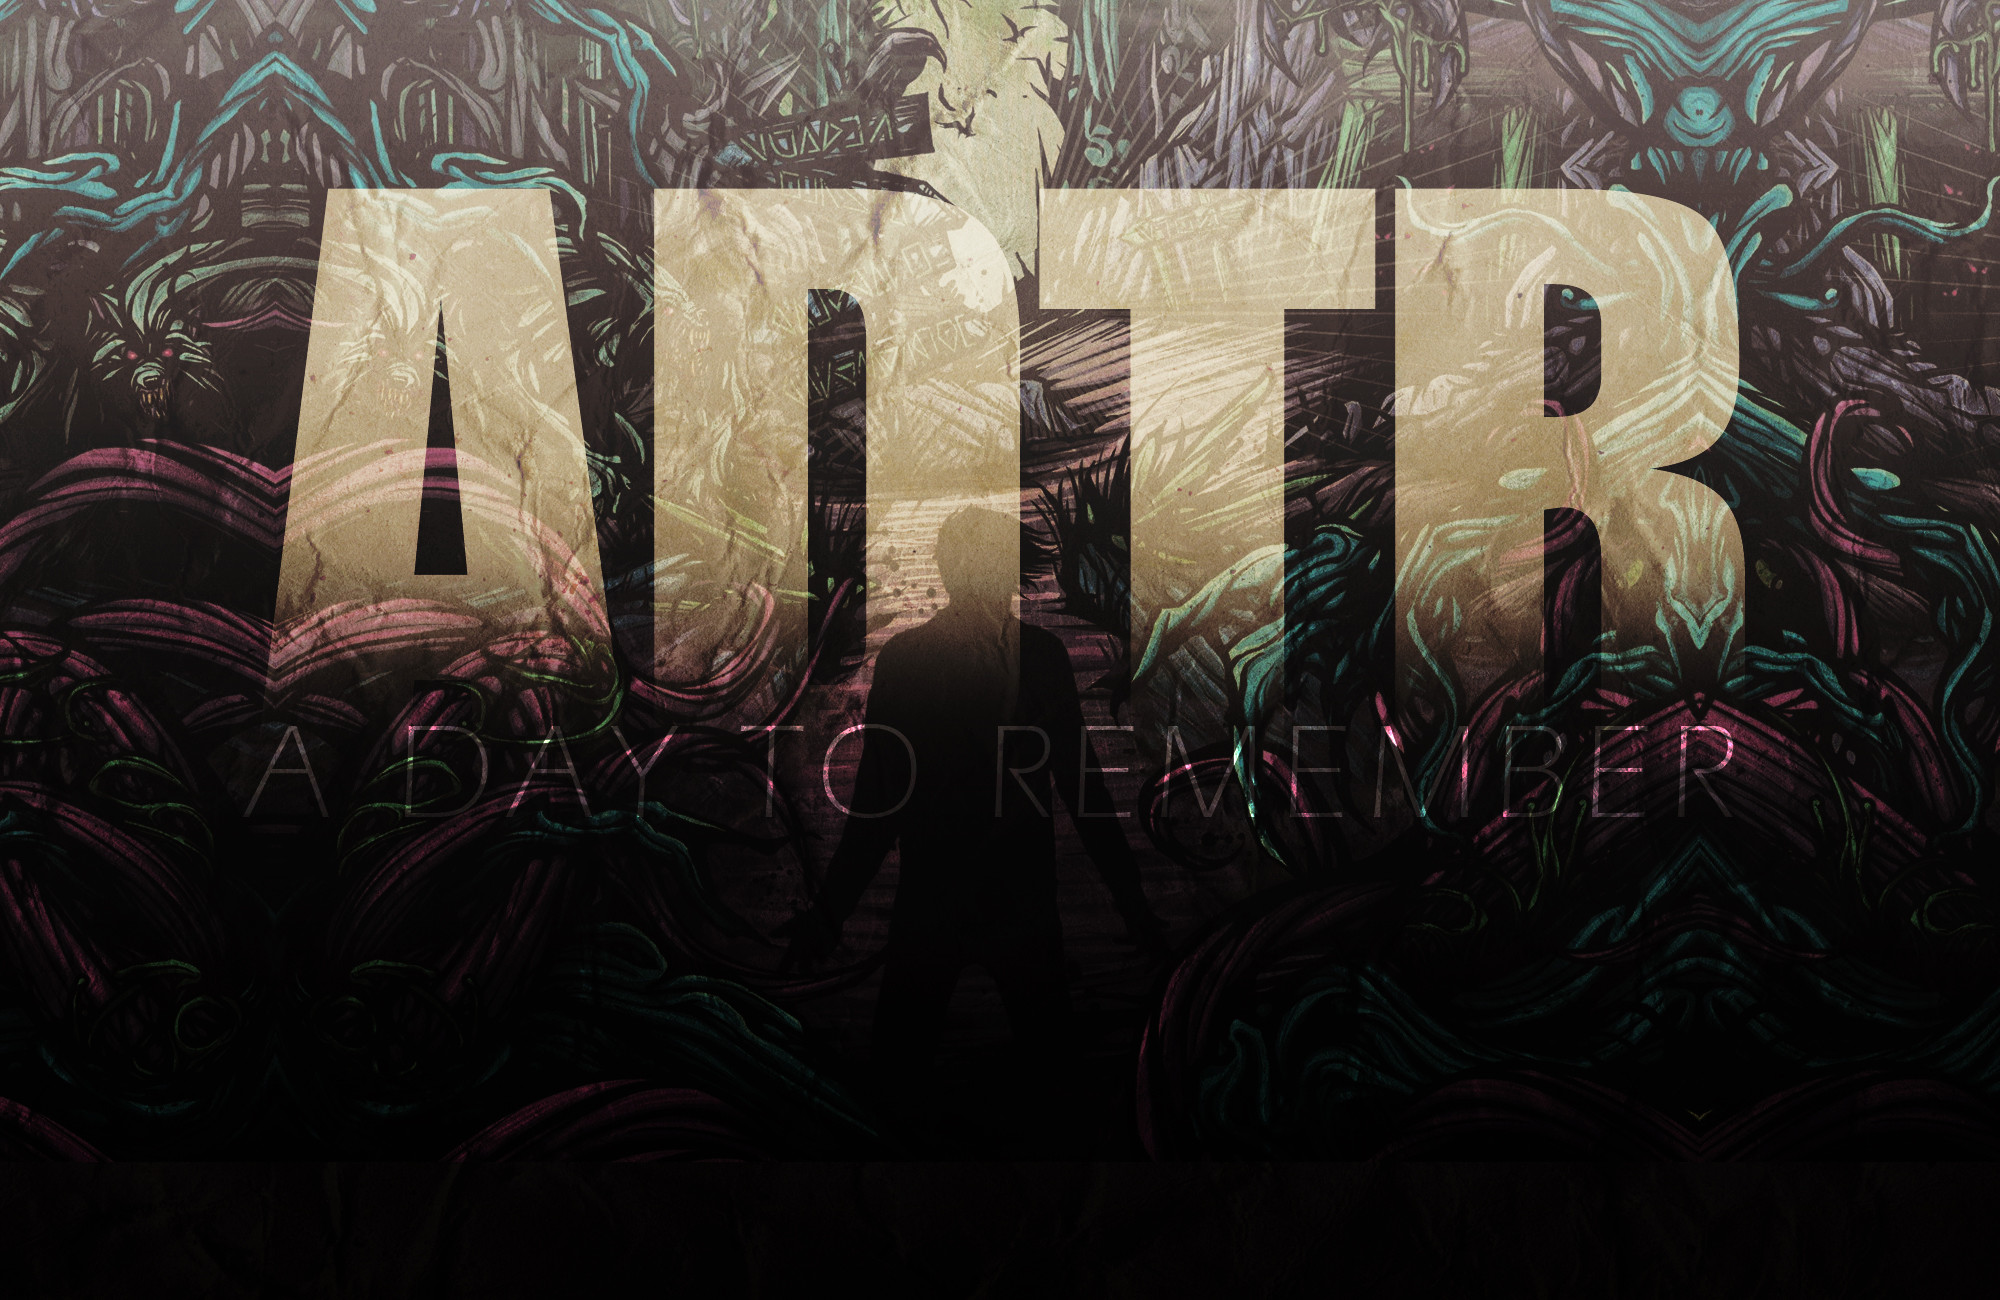 A Day to Remember Wallpaper (72+ images) A Day To Remember Lyrics Wallpaper